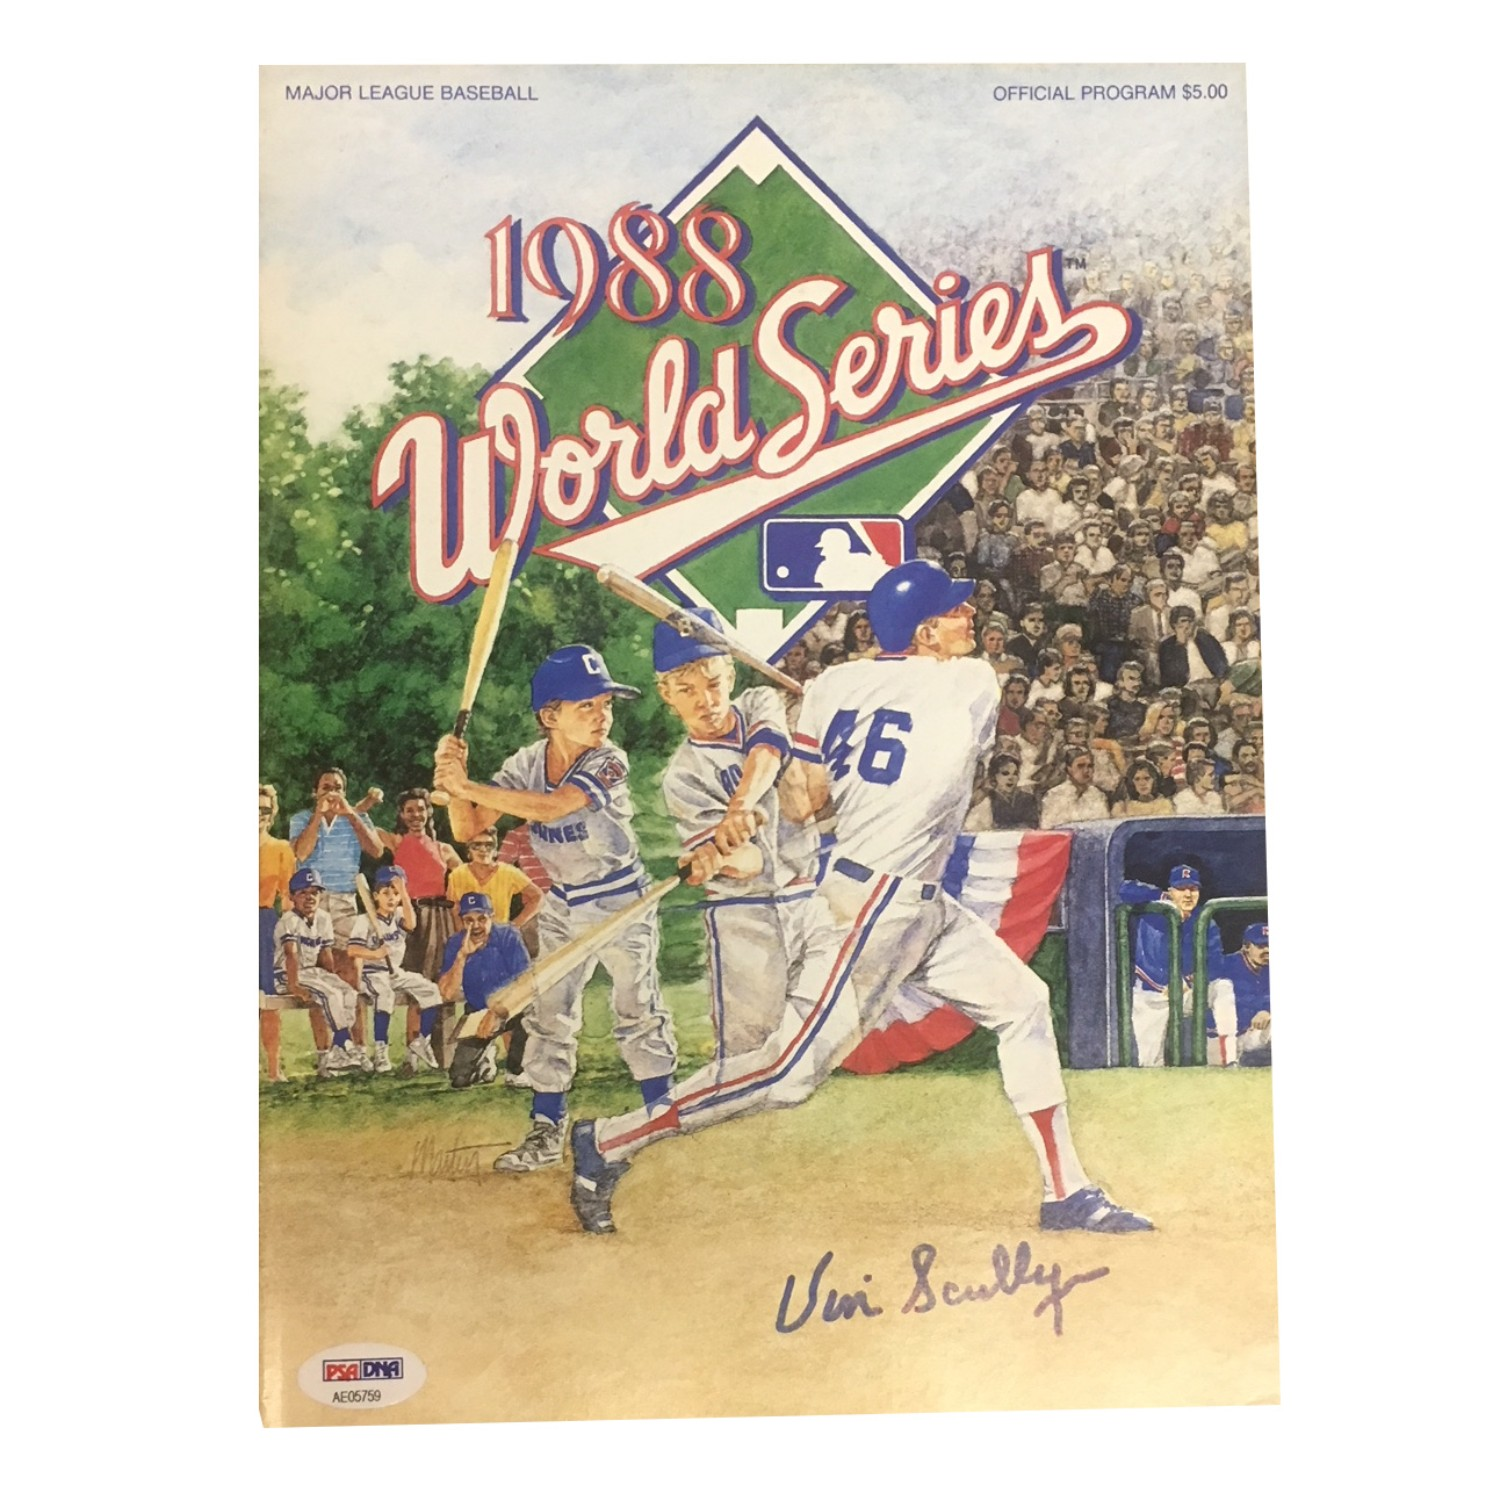 vin scully autographed 1988 world series program from powers autographs